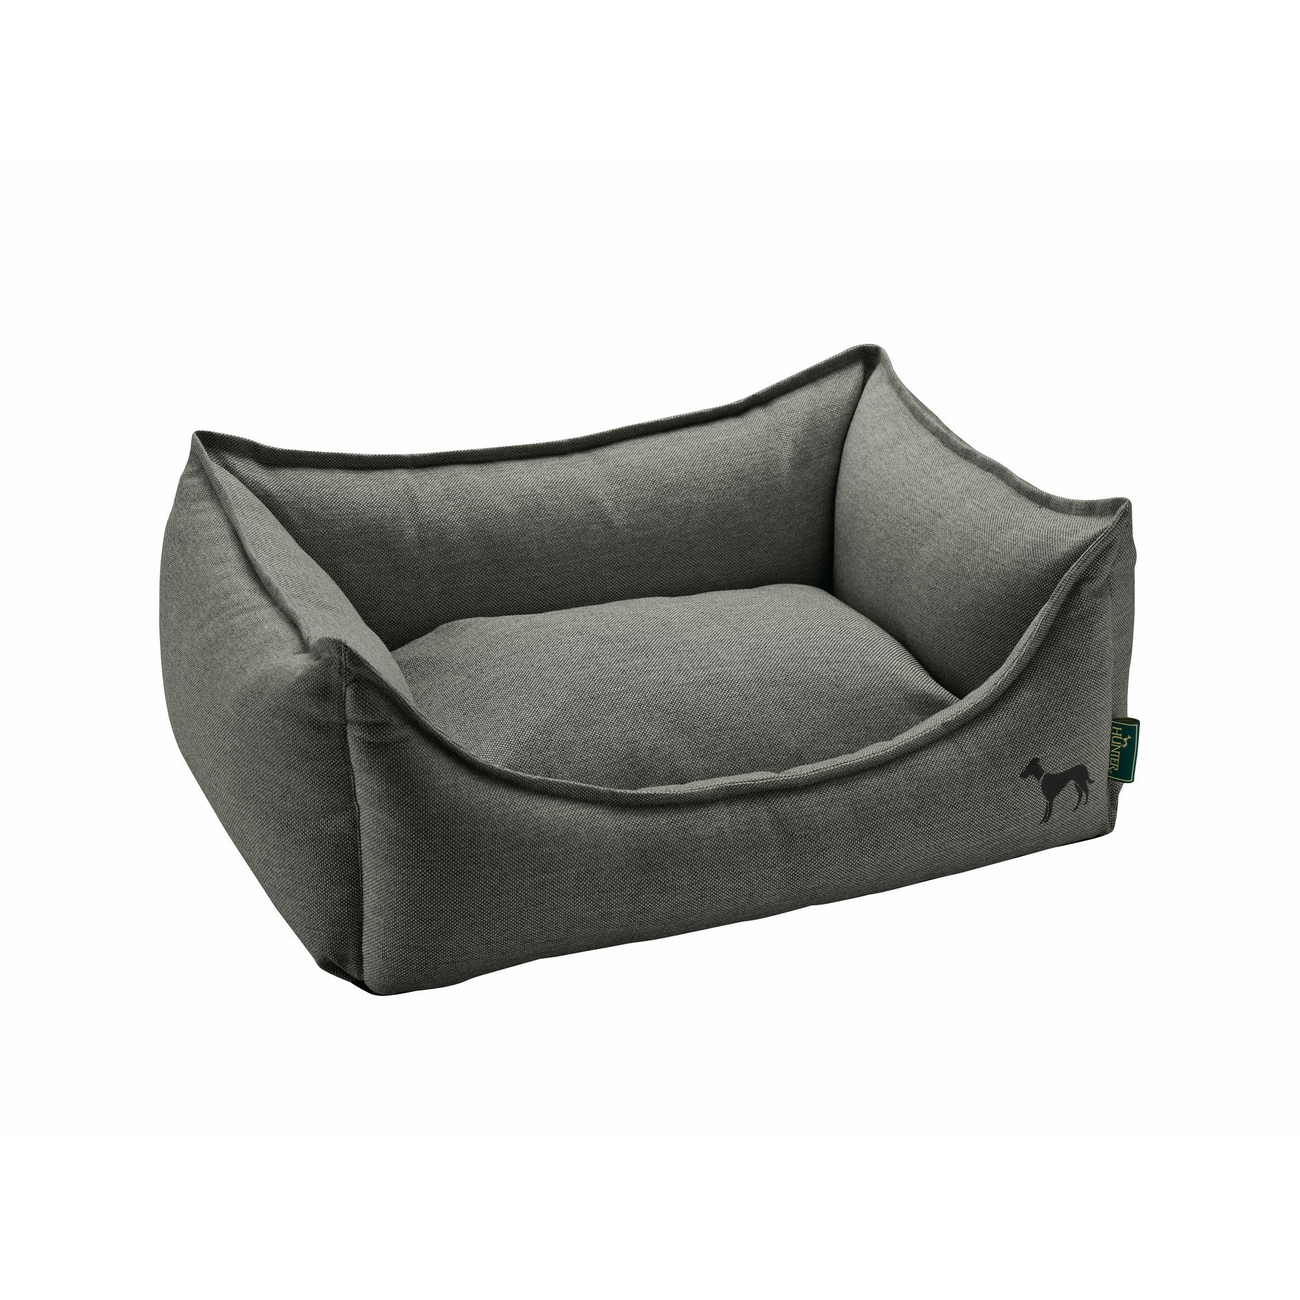 Hunter Hundesofa Livingston 60856, Bild 2